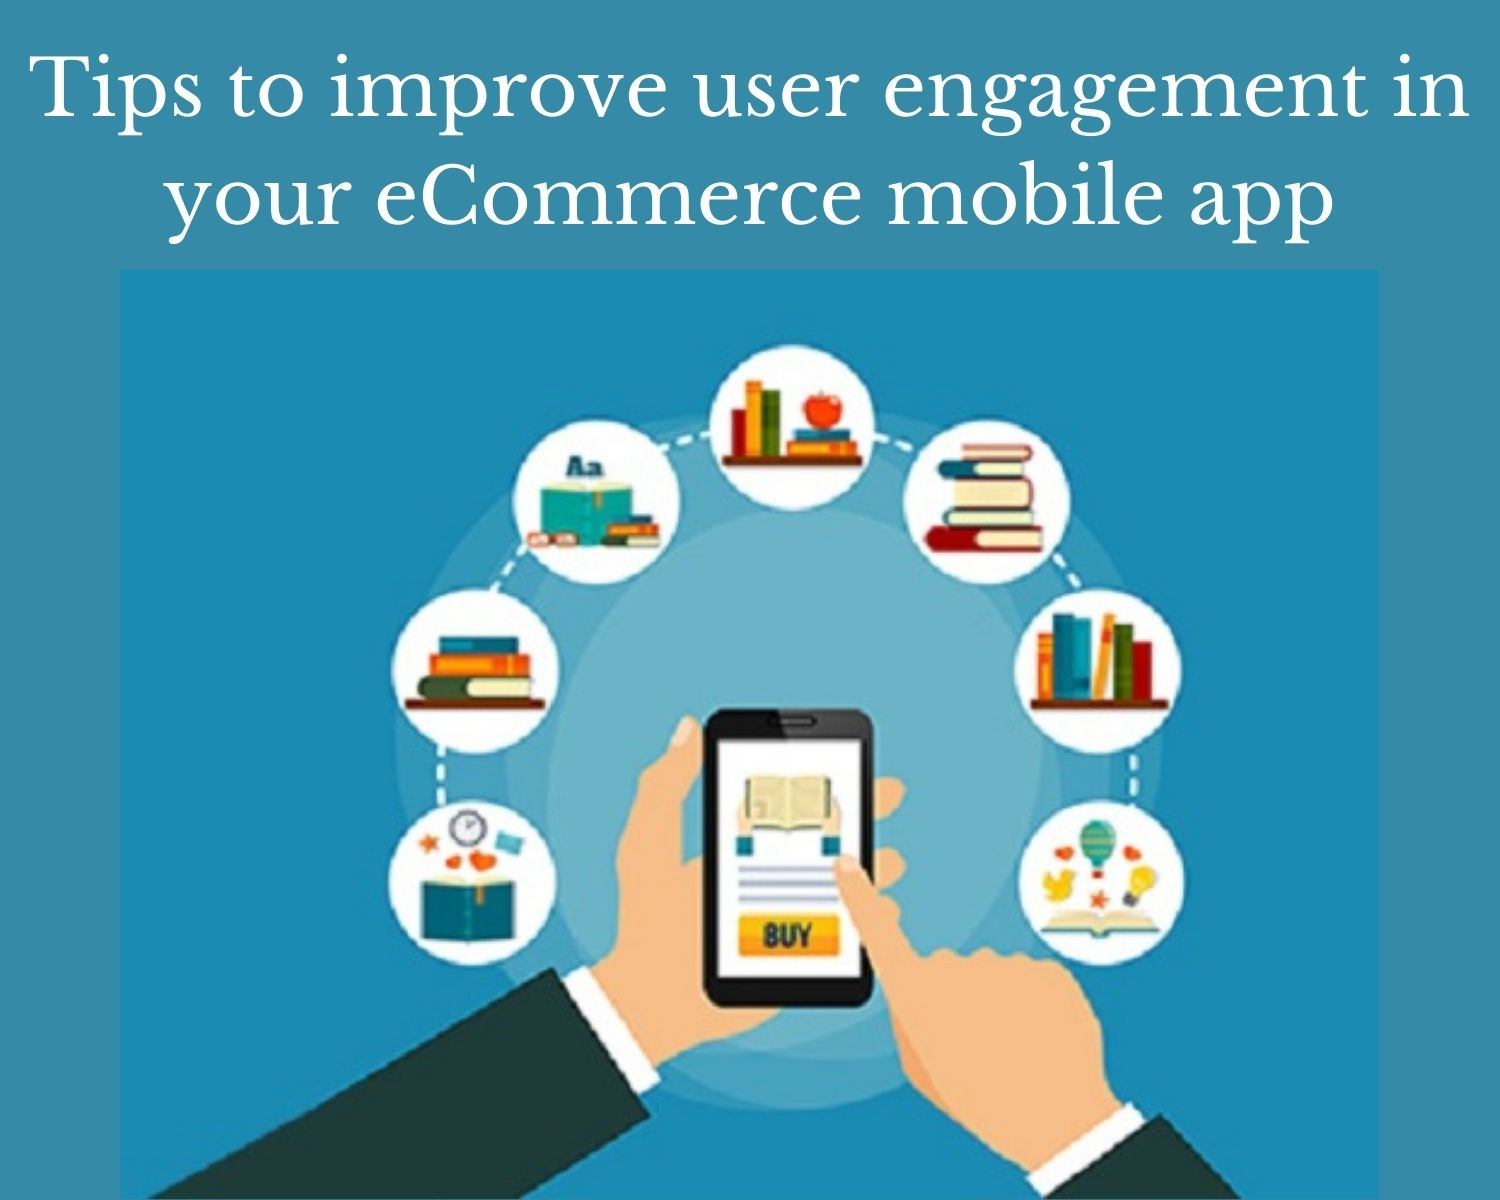 Tips To Improve User Engagement in Your eCommerce Mobile App